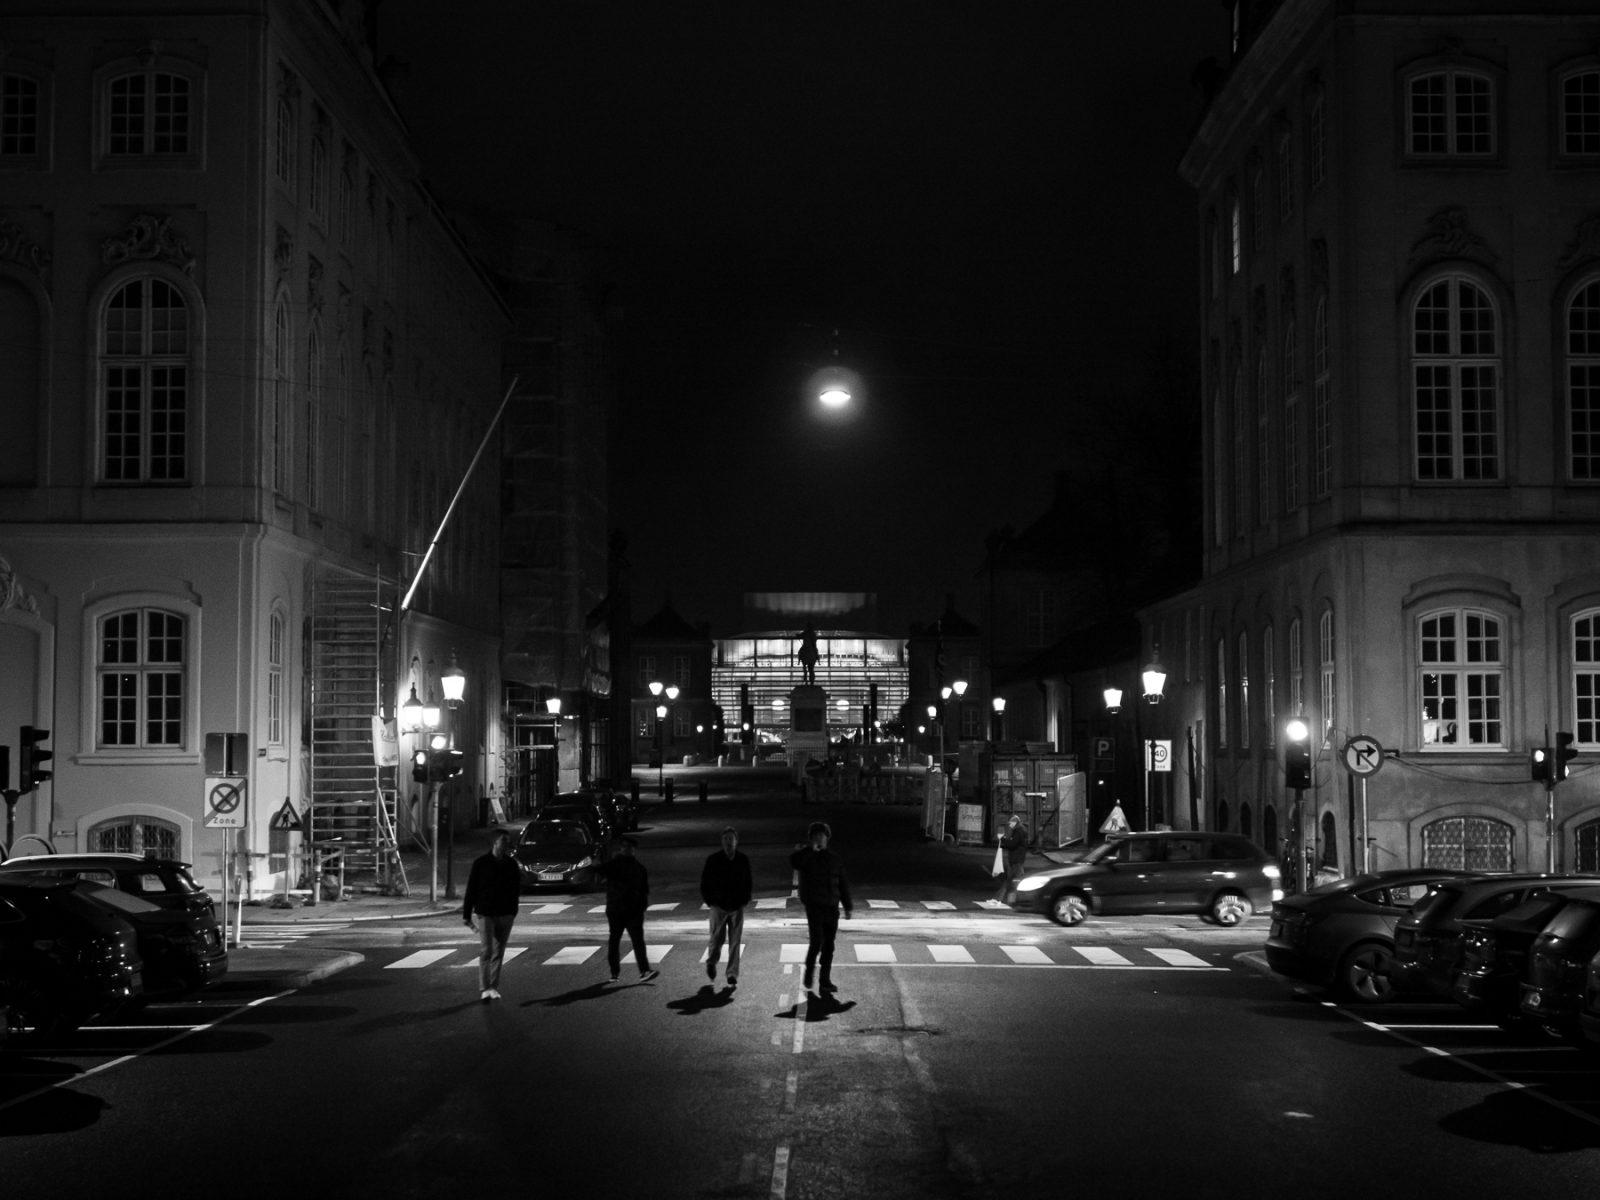 Street photography: Young people at the Marble Church with The Opera in the background